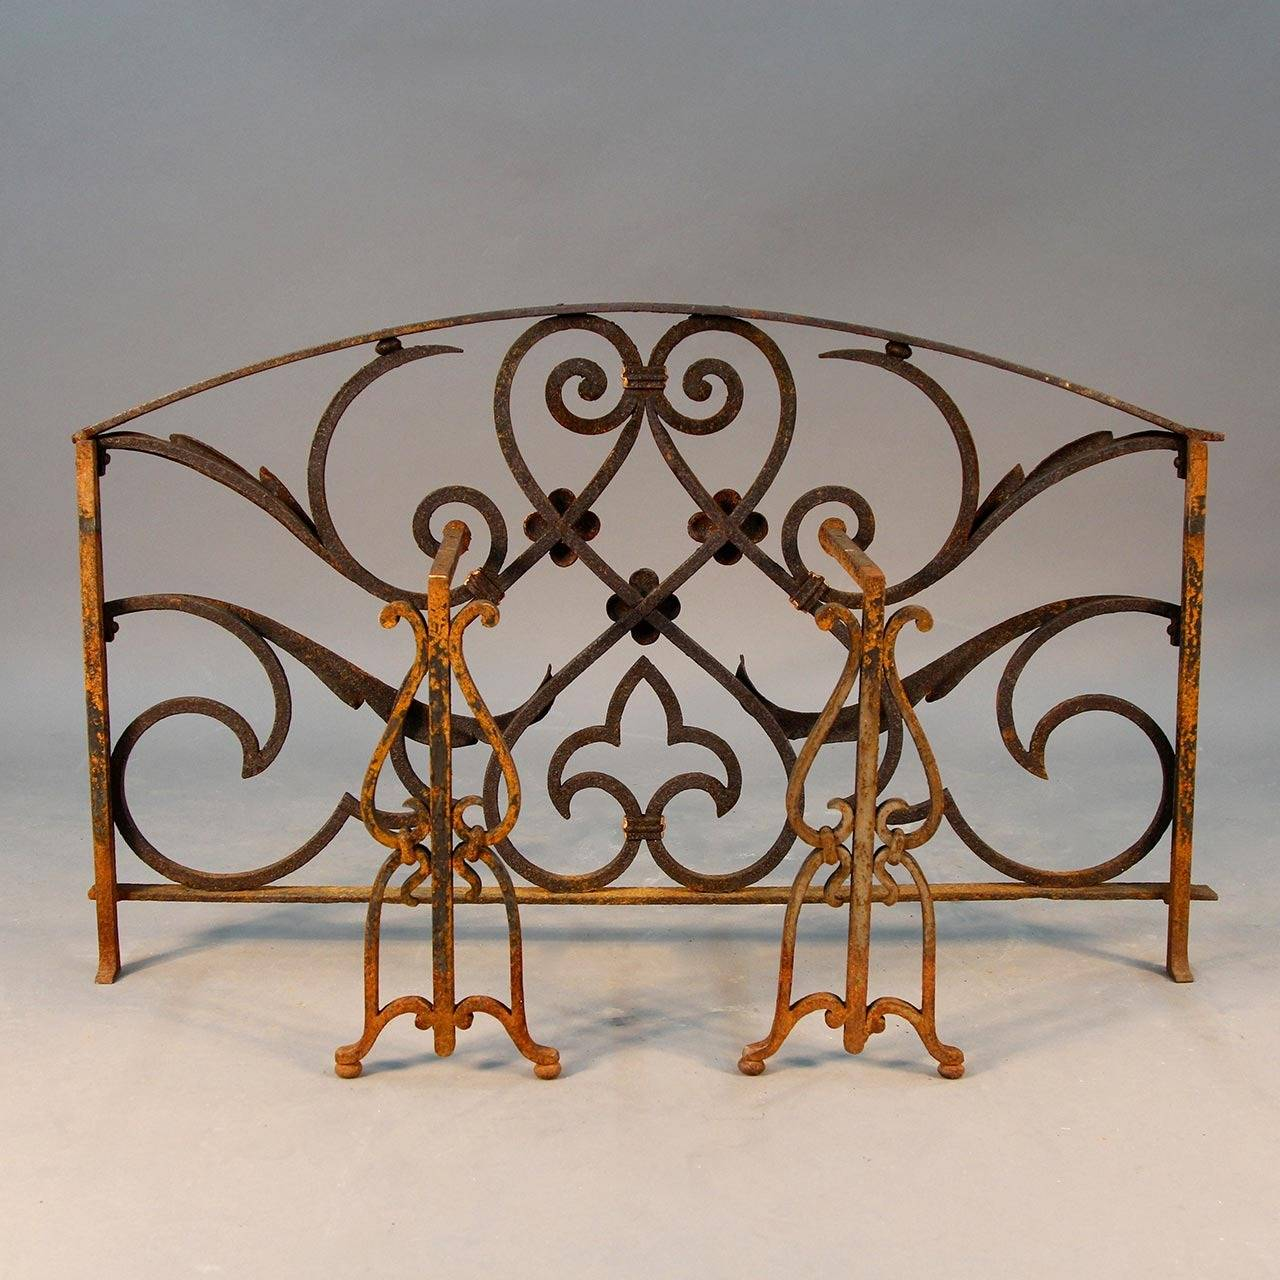 Scrolled Iron Outdoor Fire Screen at 1stdibs